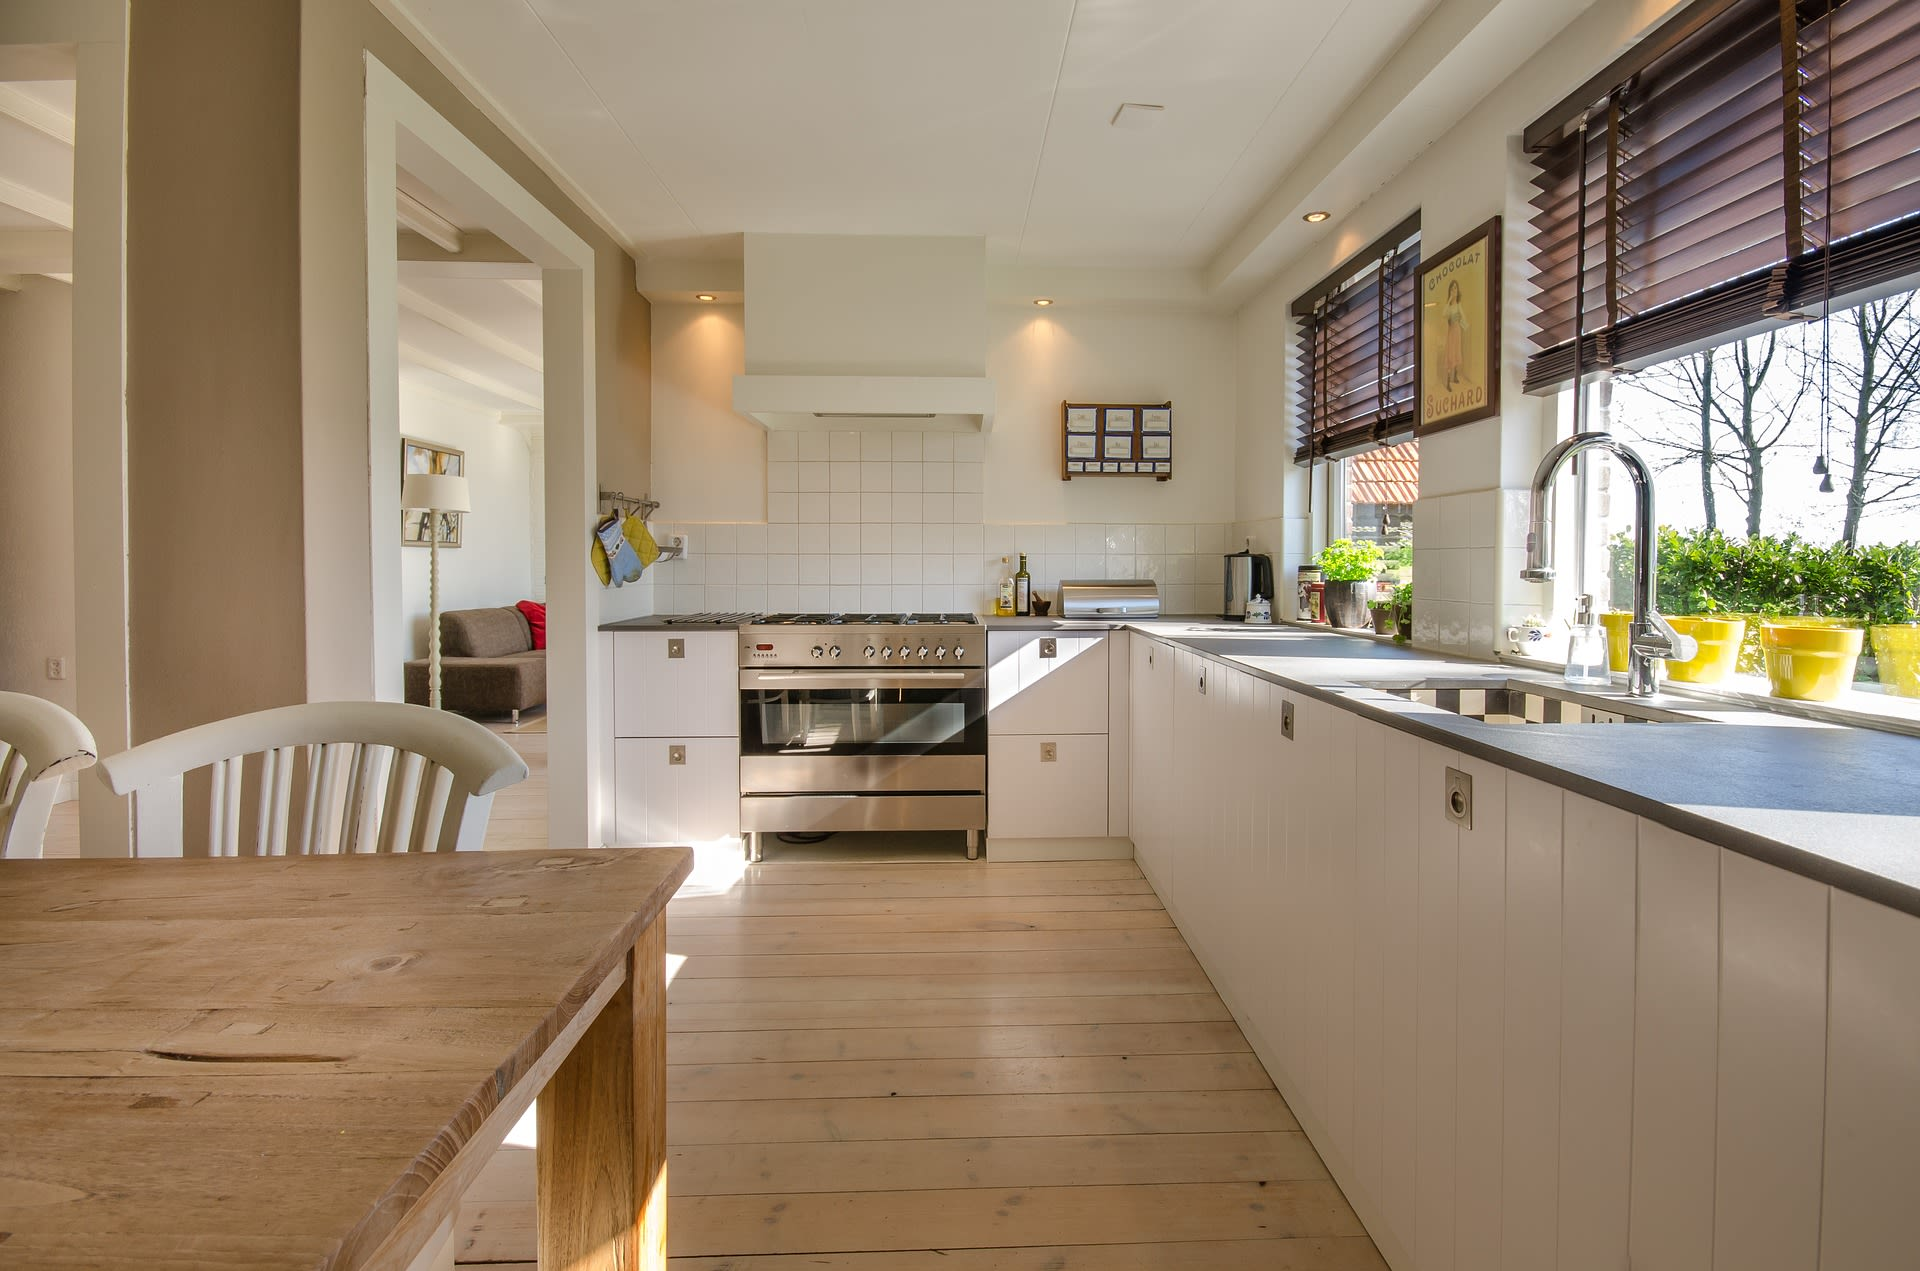 Make The Most Of Your Ridgefield Kitchen Space! 7 Time-tested Organizing Tips